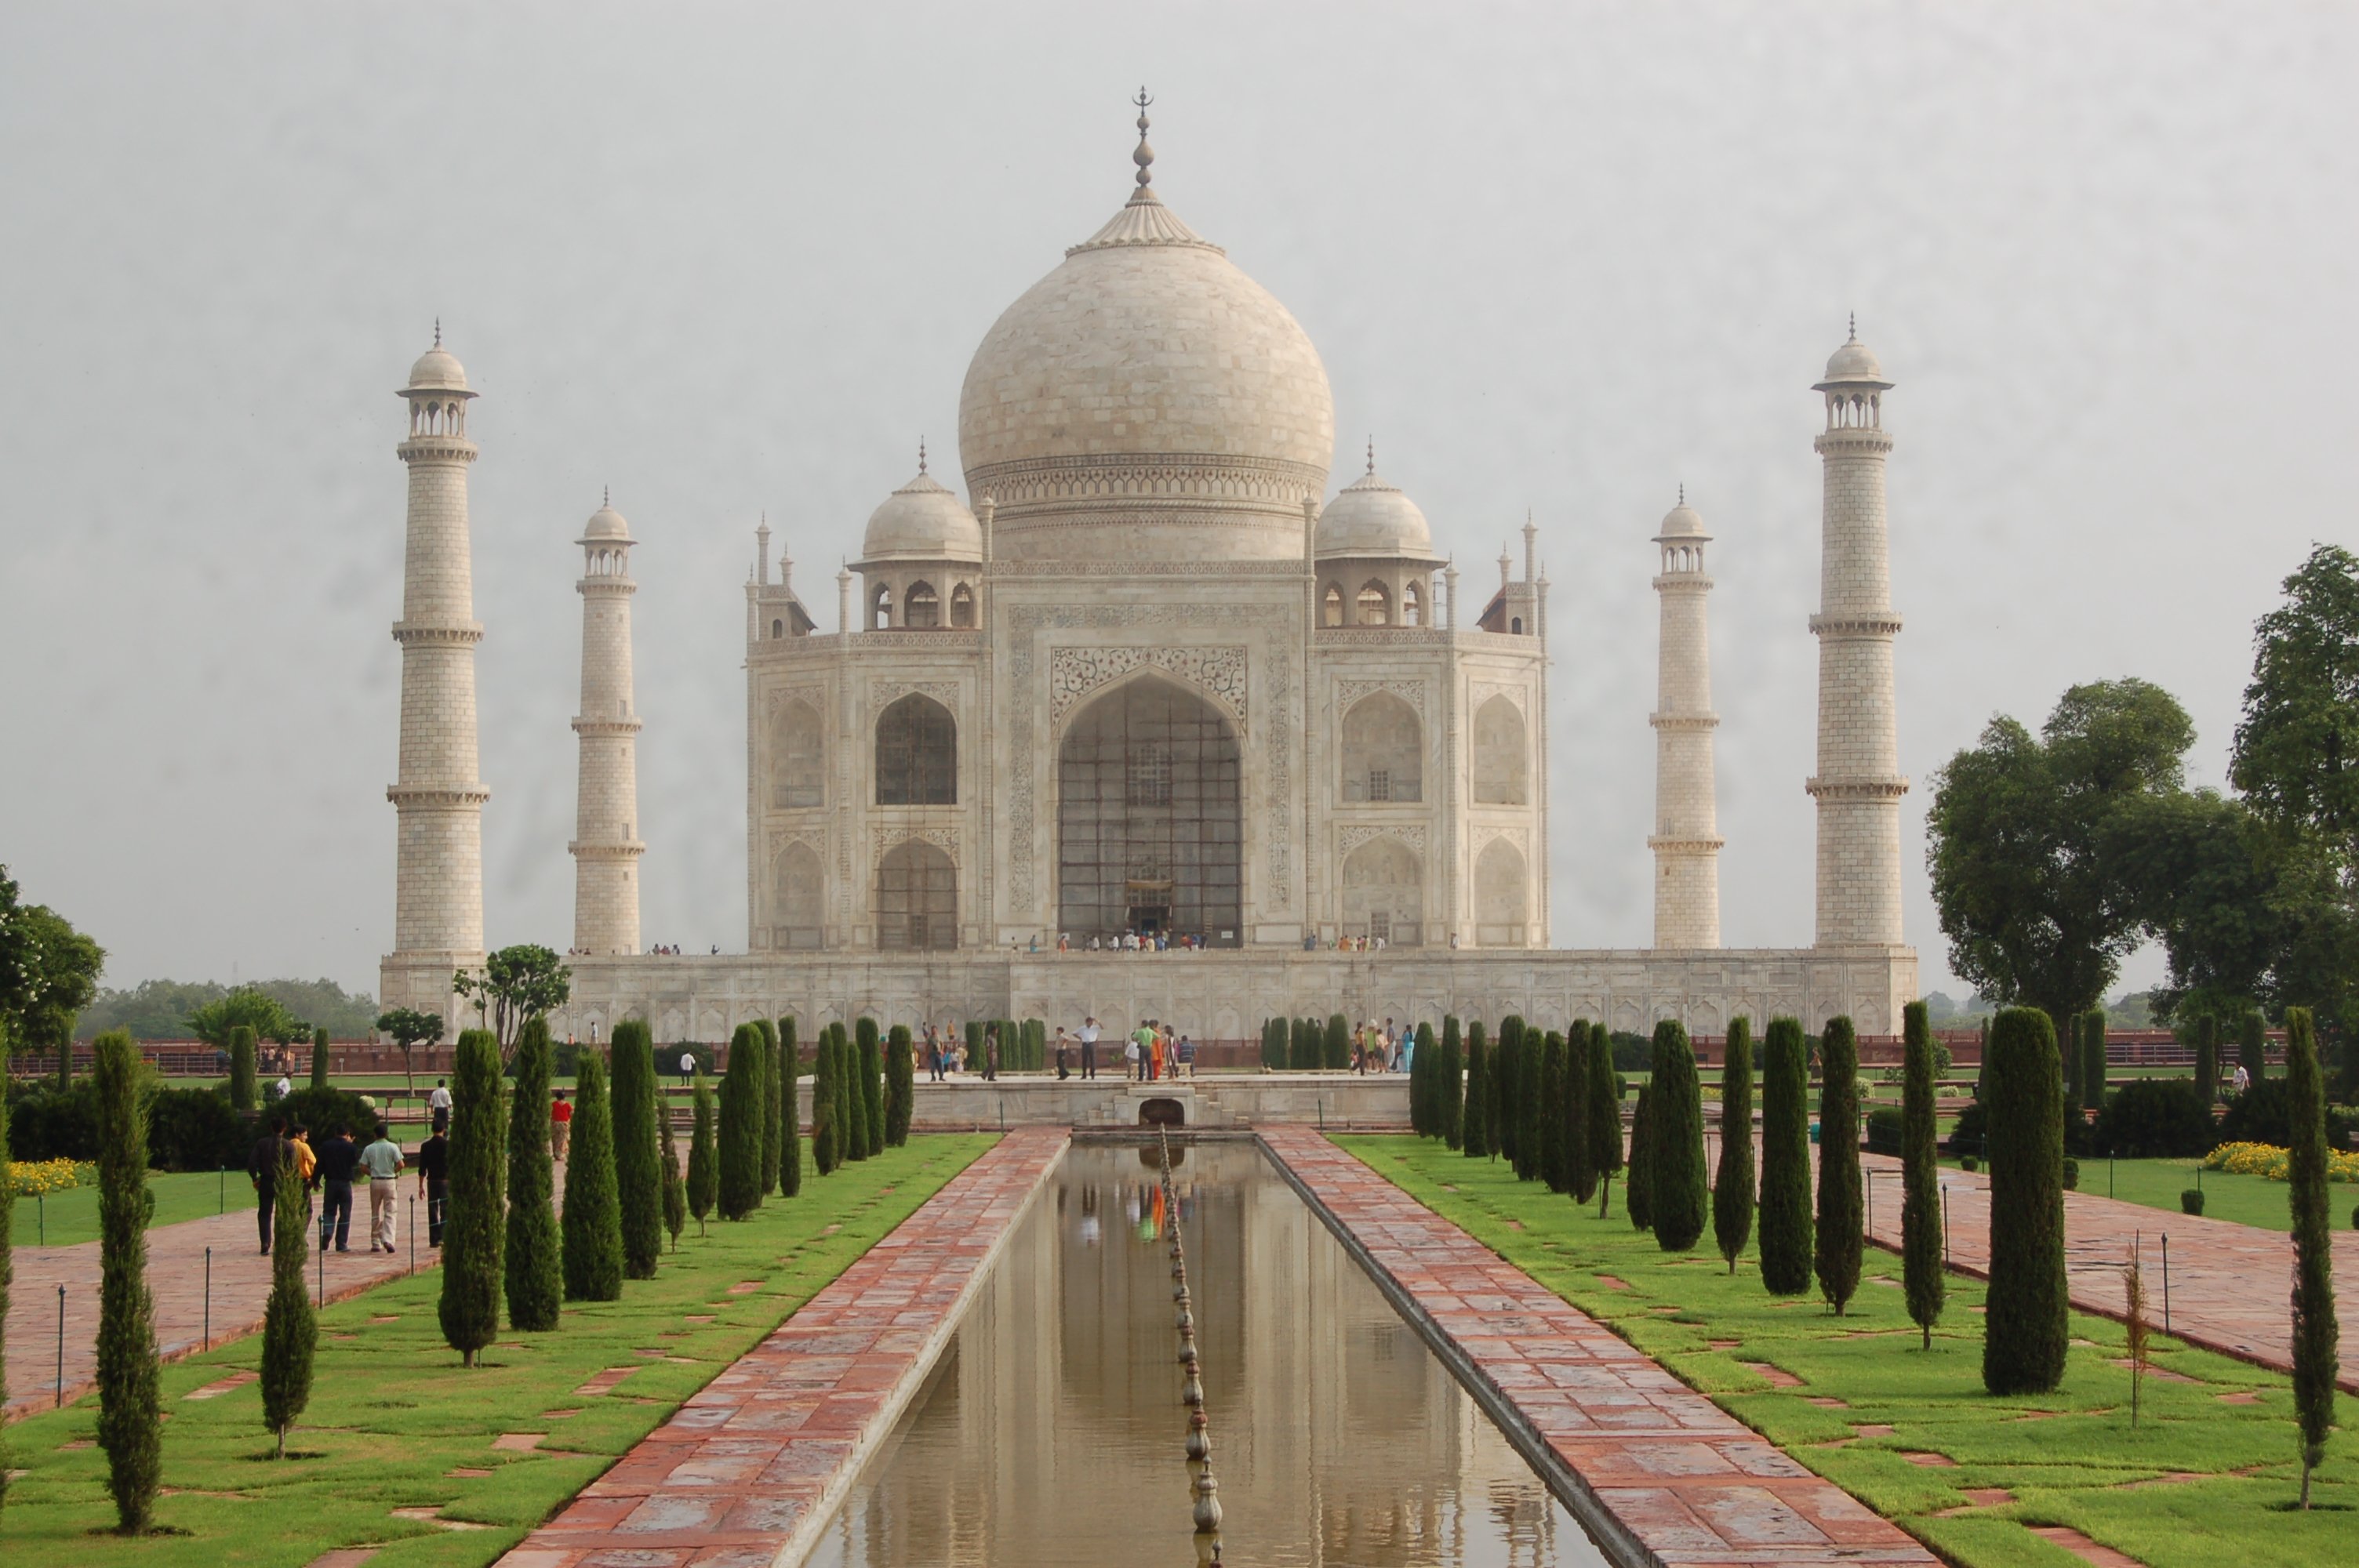 a study and history of the taj mahal Quick answer appearing in several lists of world wonders, the taj mahal is not only one of the largest tourist attractions in india, it is also the most well-known example of mughal architecture.